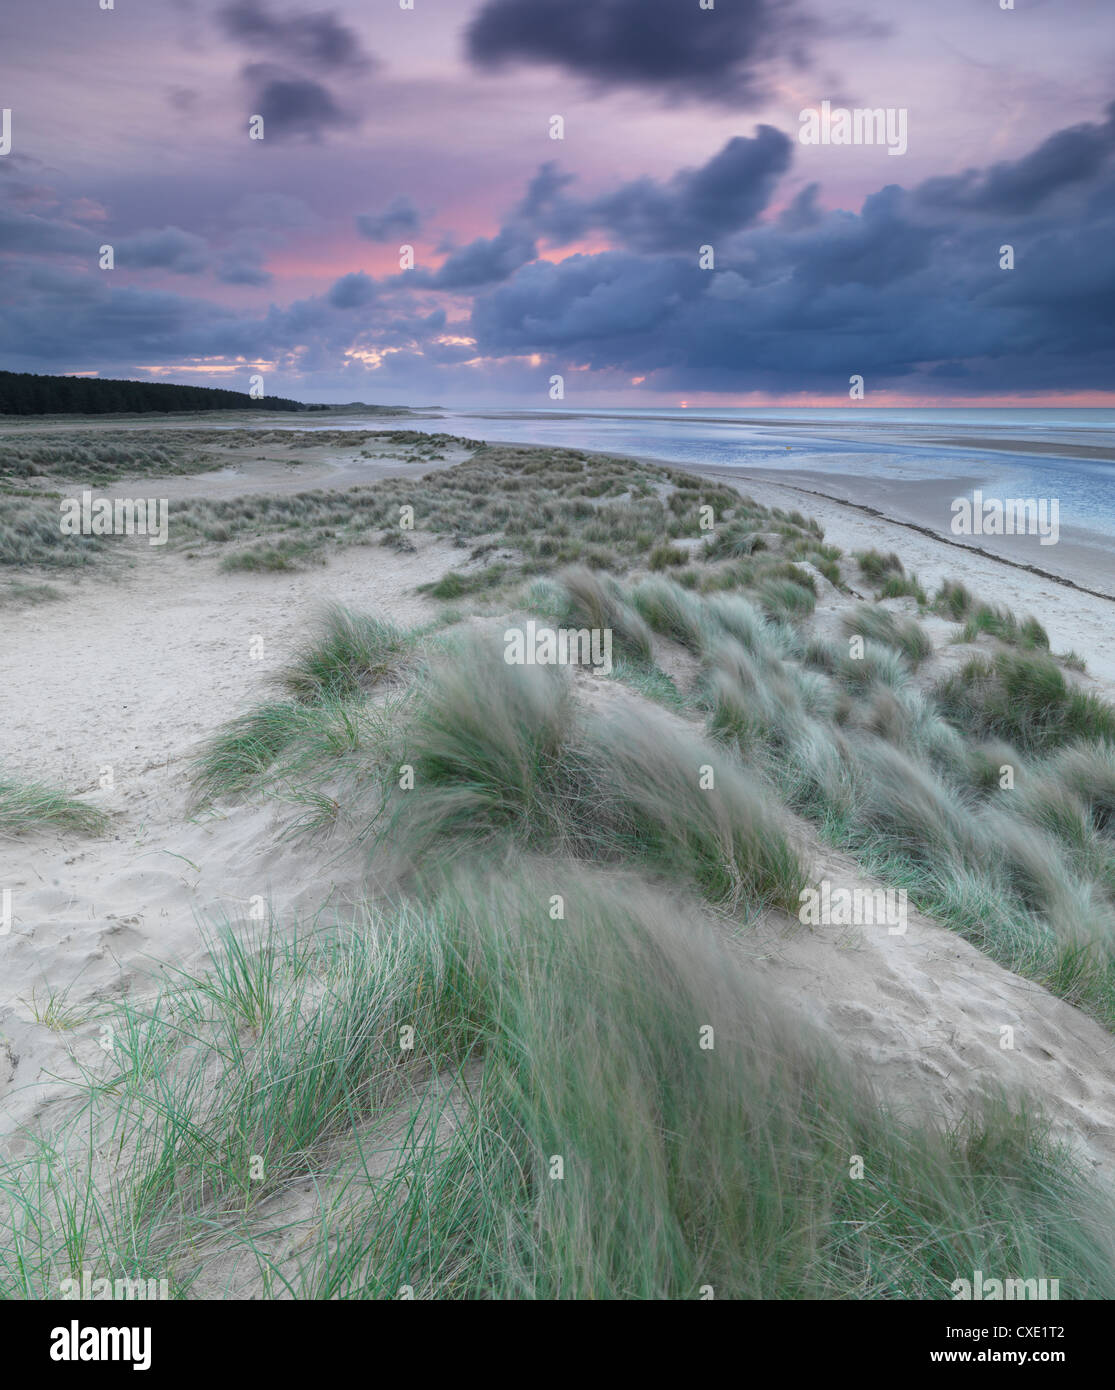 A moody spring evening at Holkham Bay, Norfolk - Stock Image